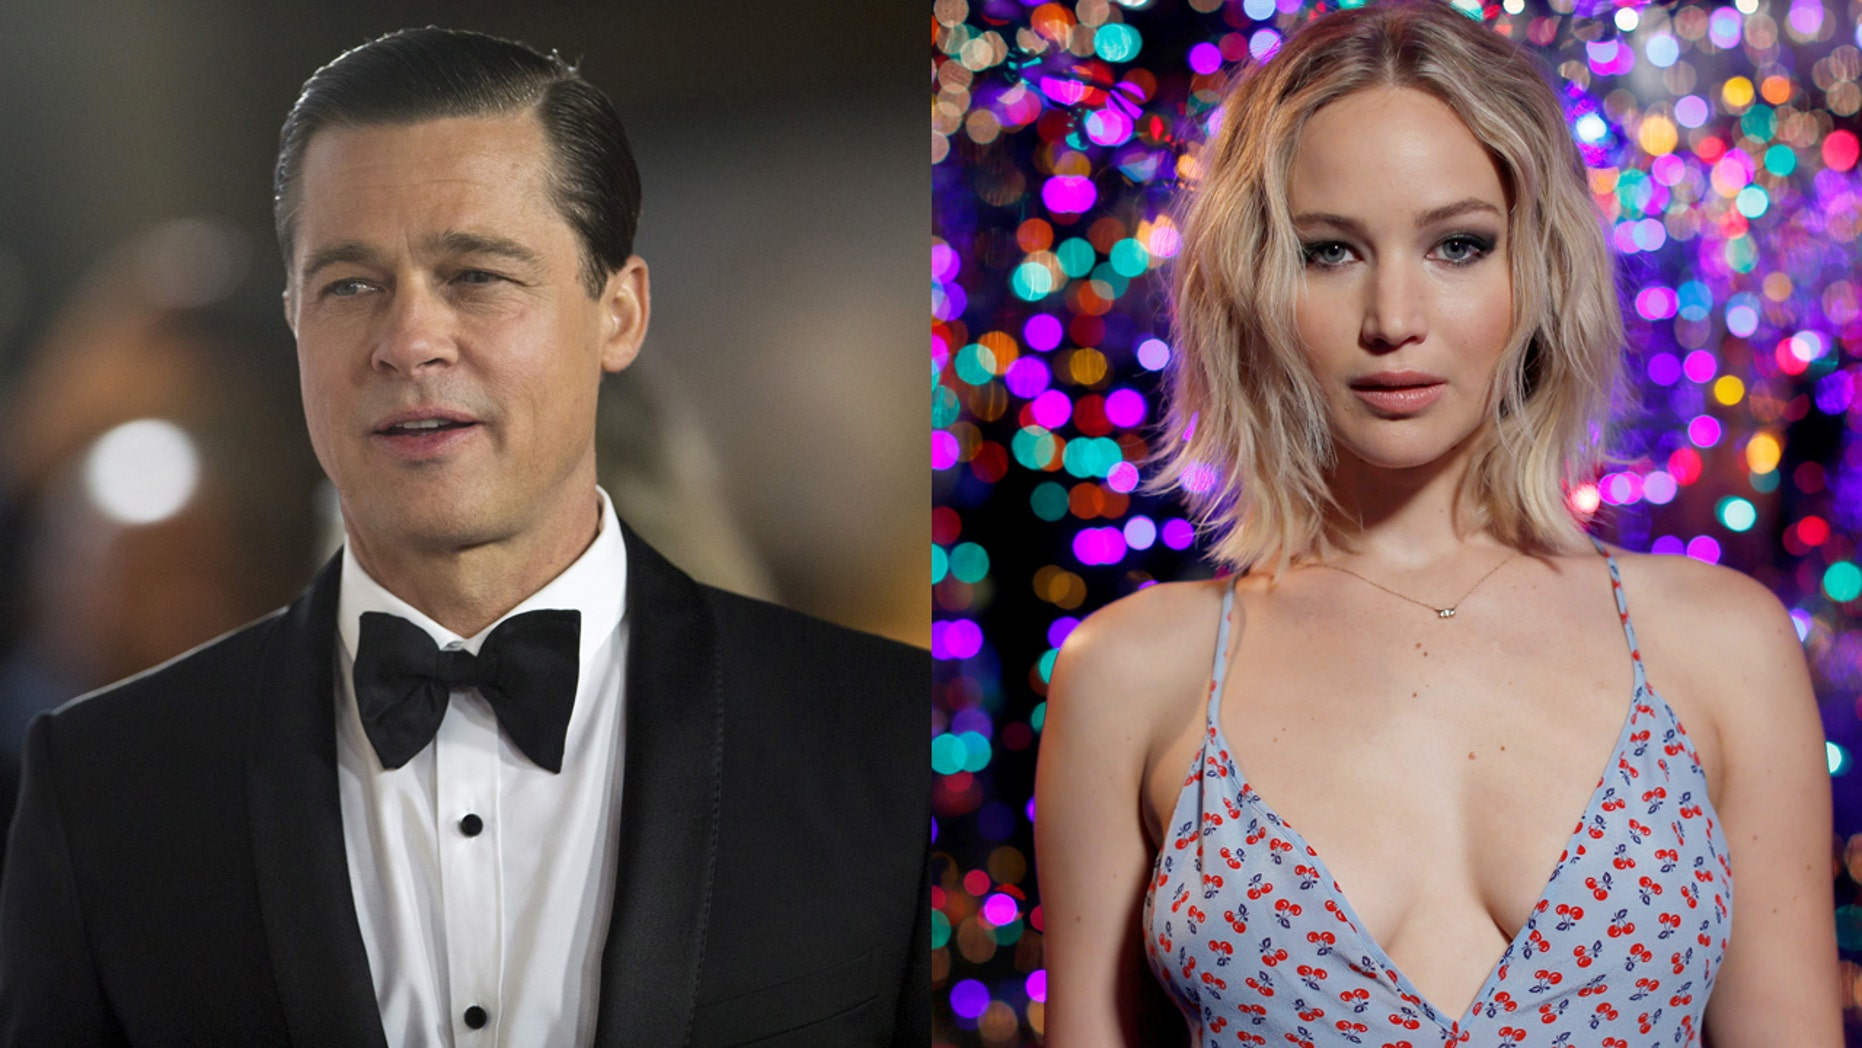 Brad Pitt and Jennifer Lawrence are rumored to be a new A-list couple according to several reports.